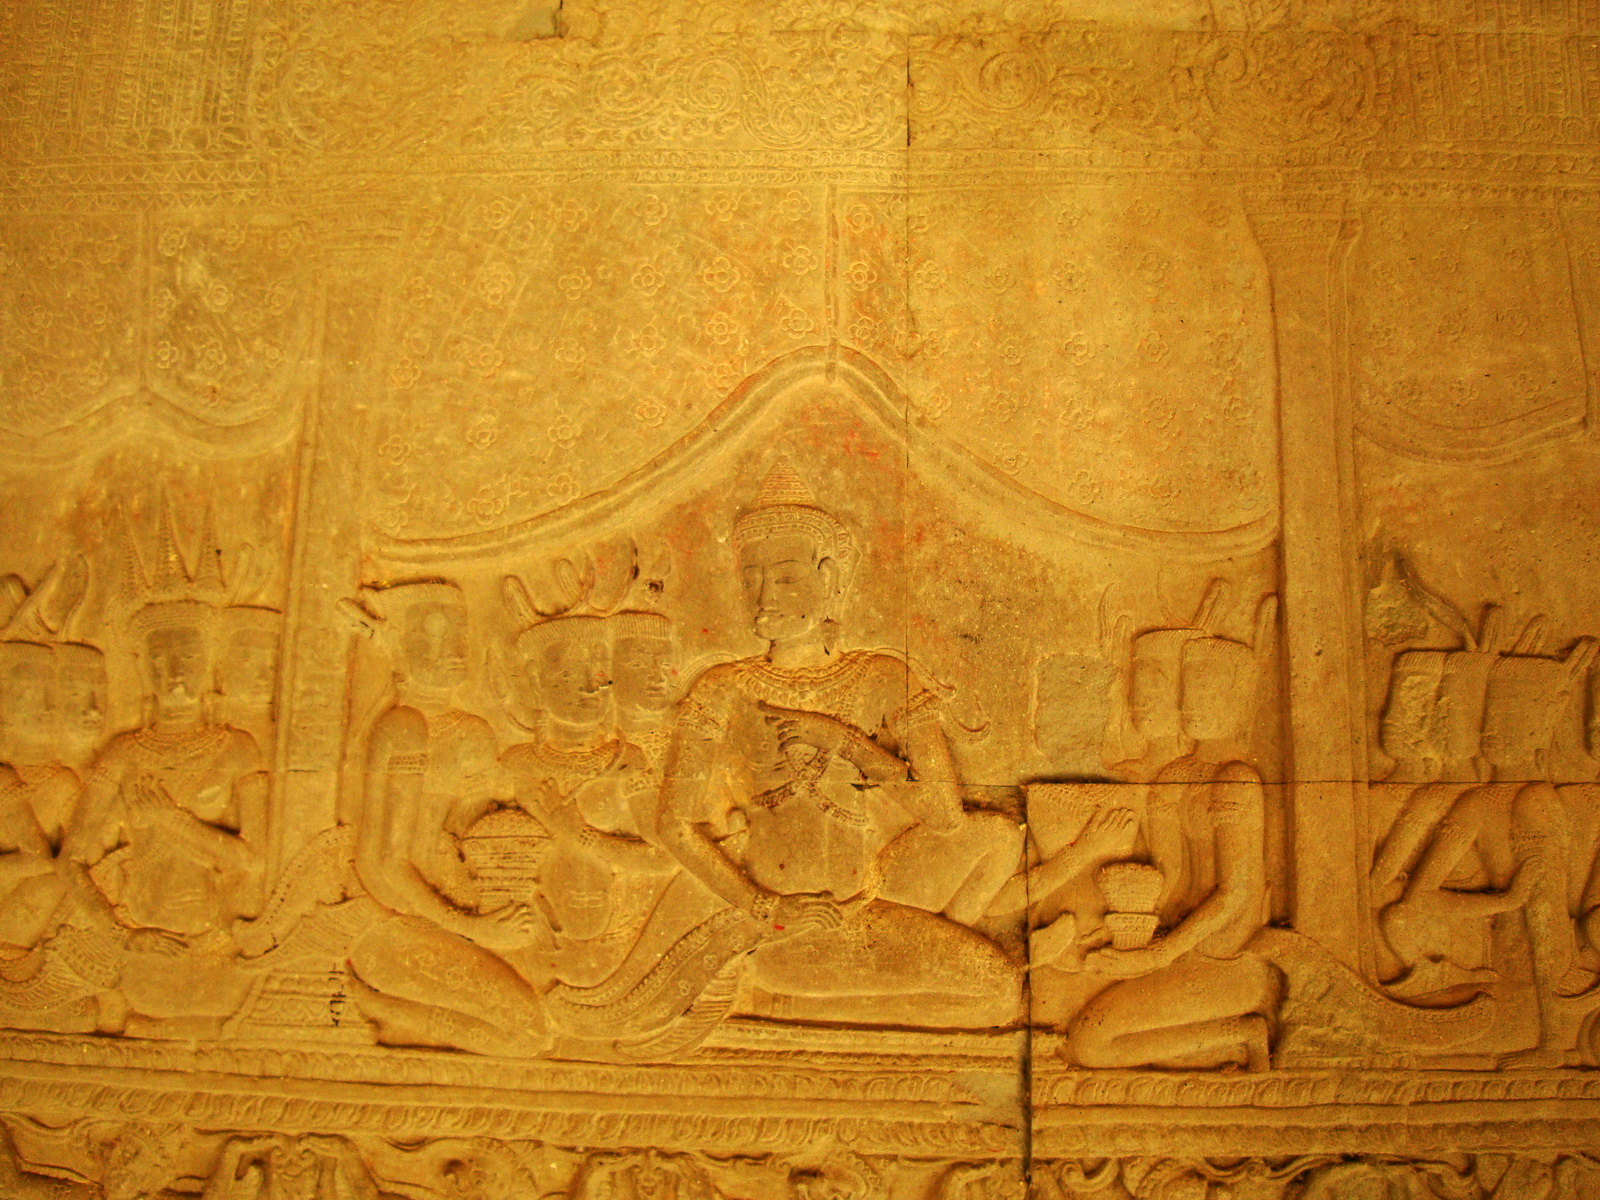 Angkor Wat Bas relief S Gallery E Wing Heavens and Hells 69